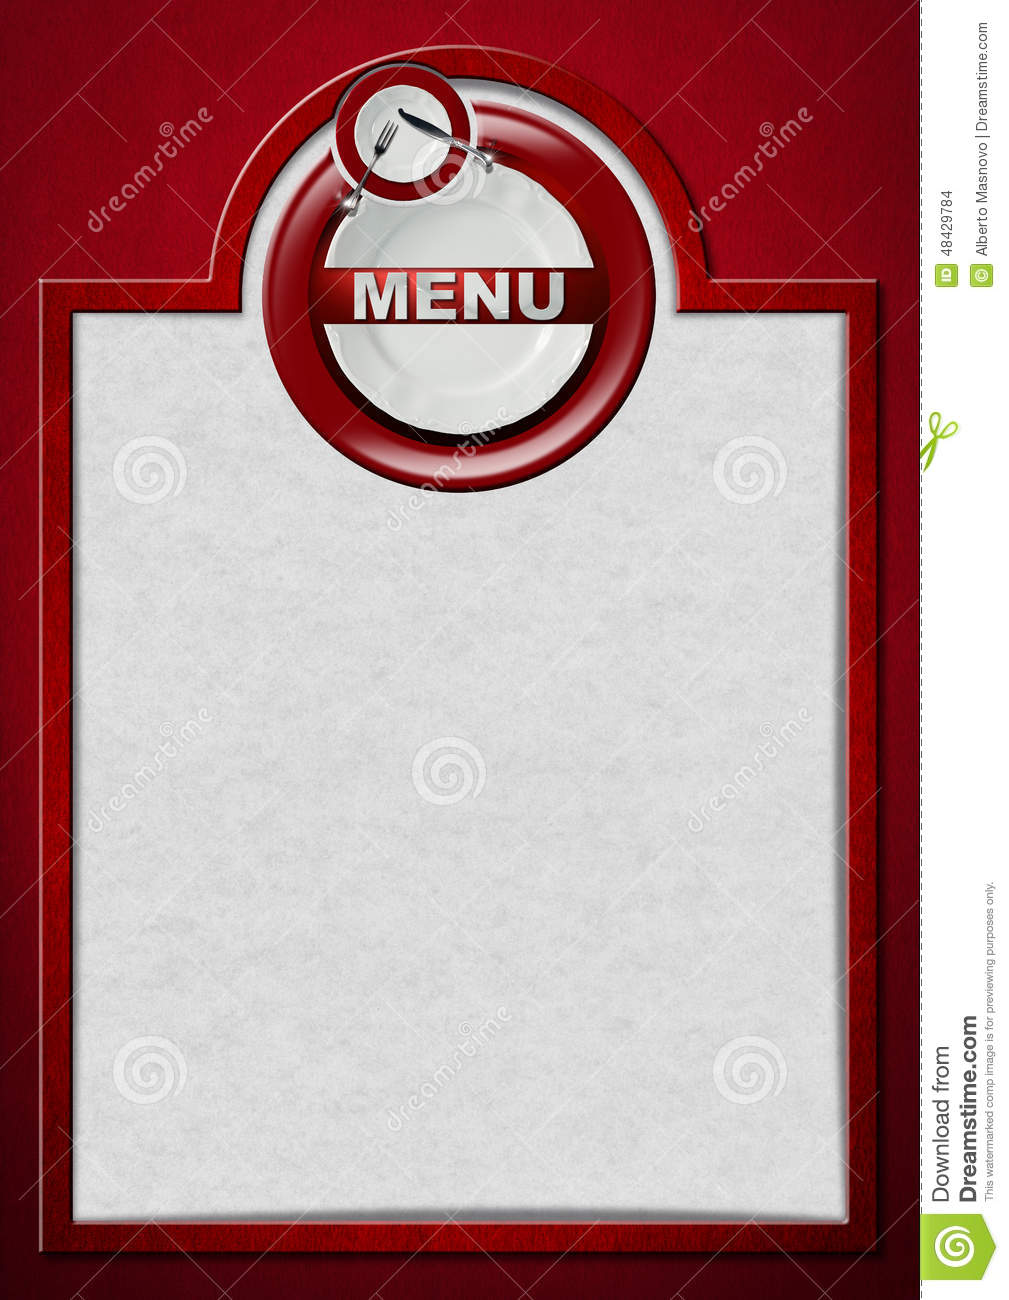 restaurant menu background design wwwimgkidcom the